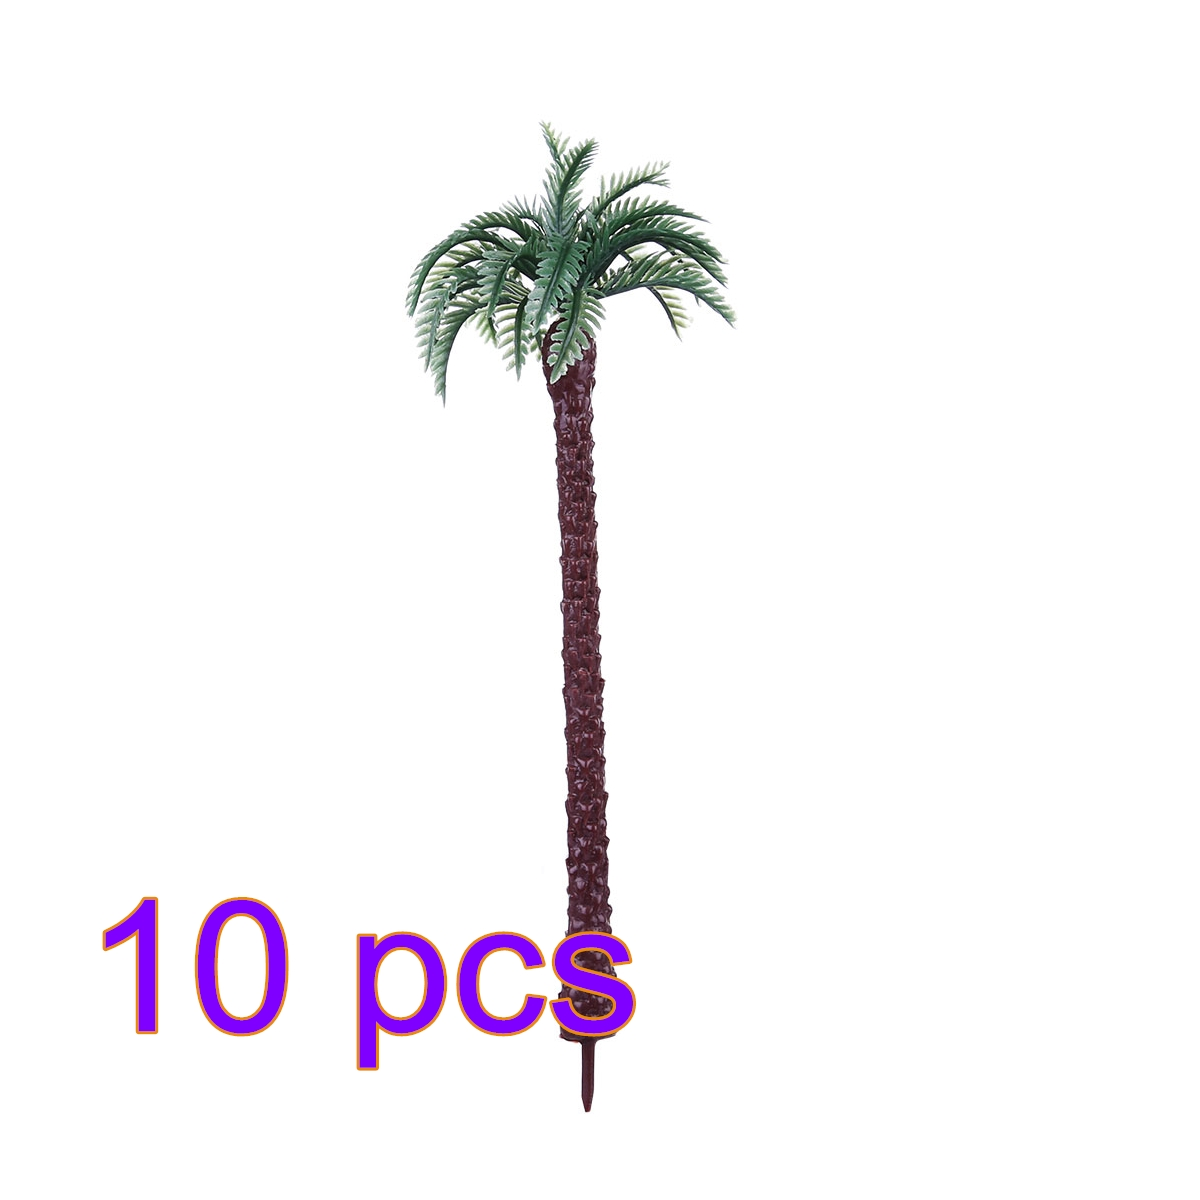 10 Pcs 19cm Plastic Coconut Palm Tree Train Railroad Architecture Diorama Tree Model Trees For Diy Miniature Landscape